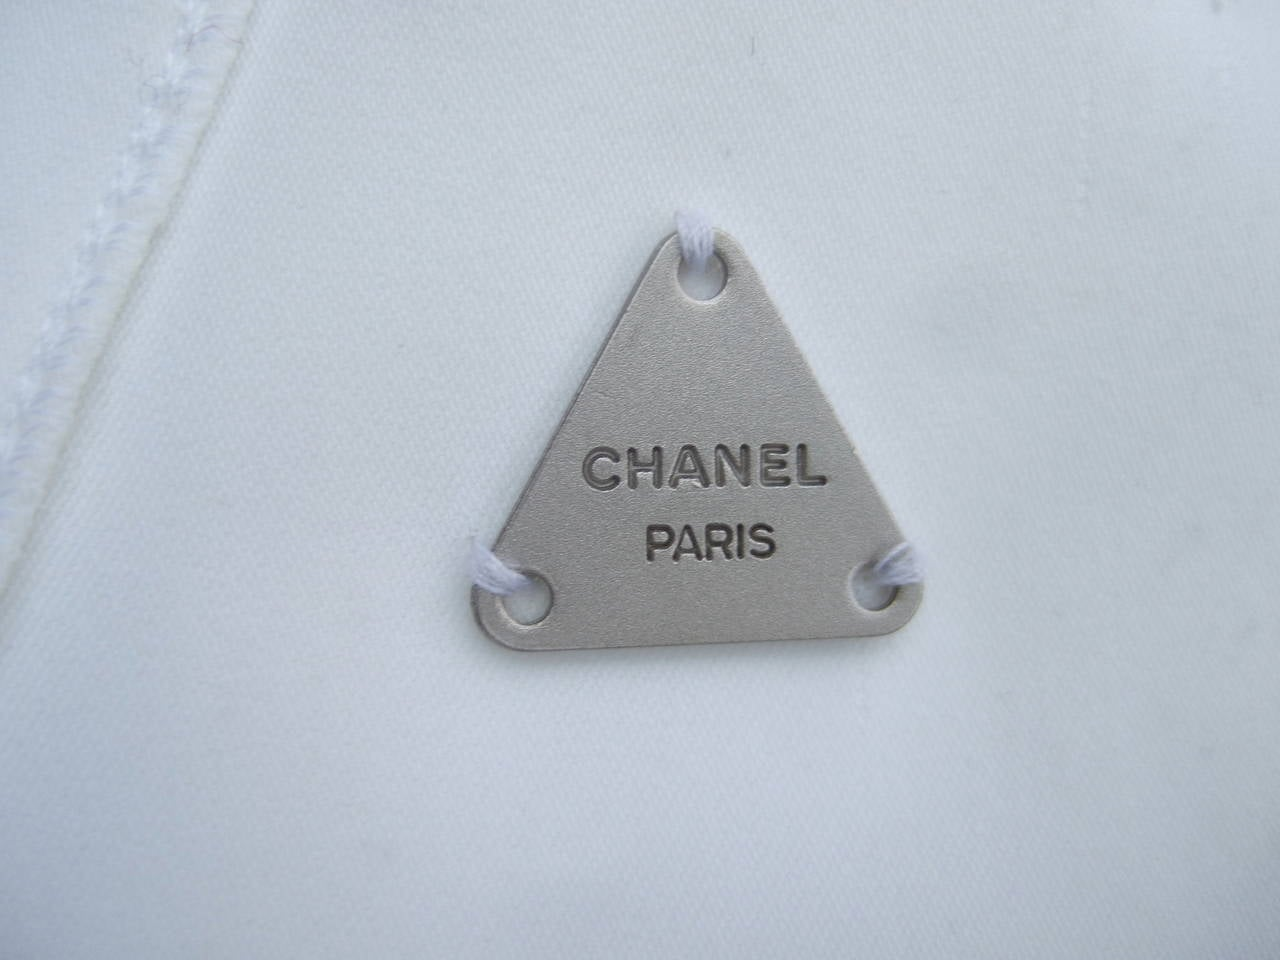 Chanel Elegant Chic Long White Skirt Size 40 In Good Condition For Sale In Santa Barbara, CA